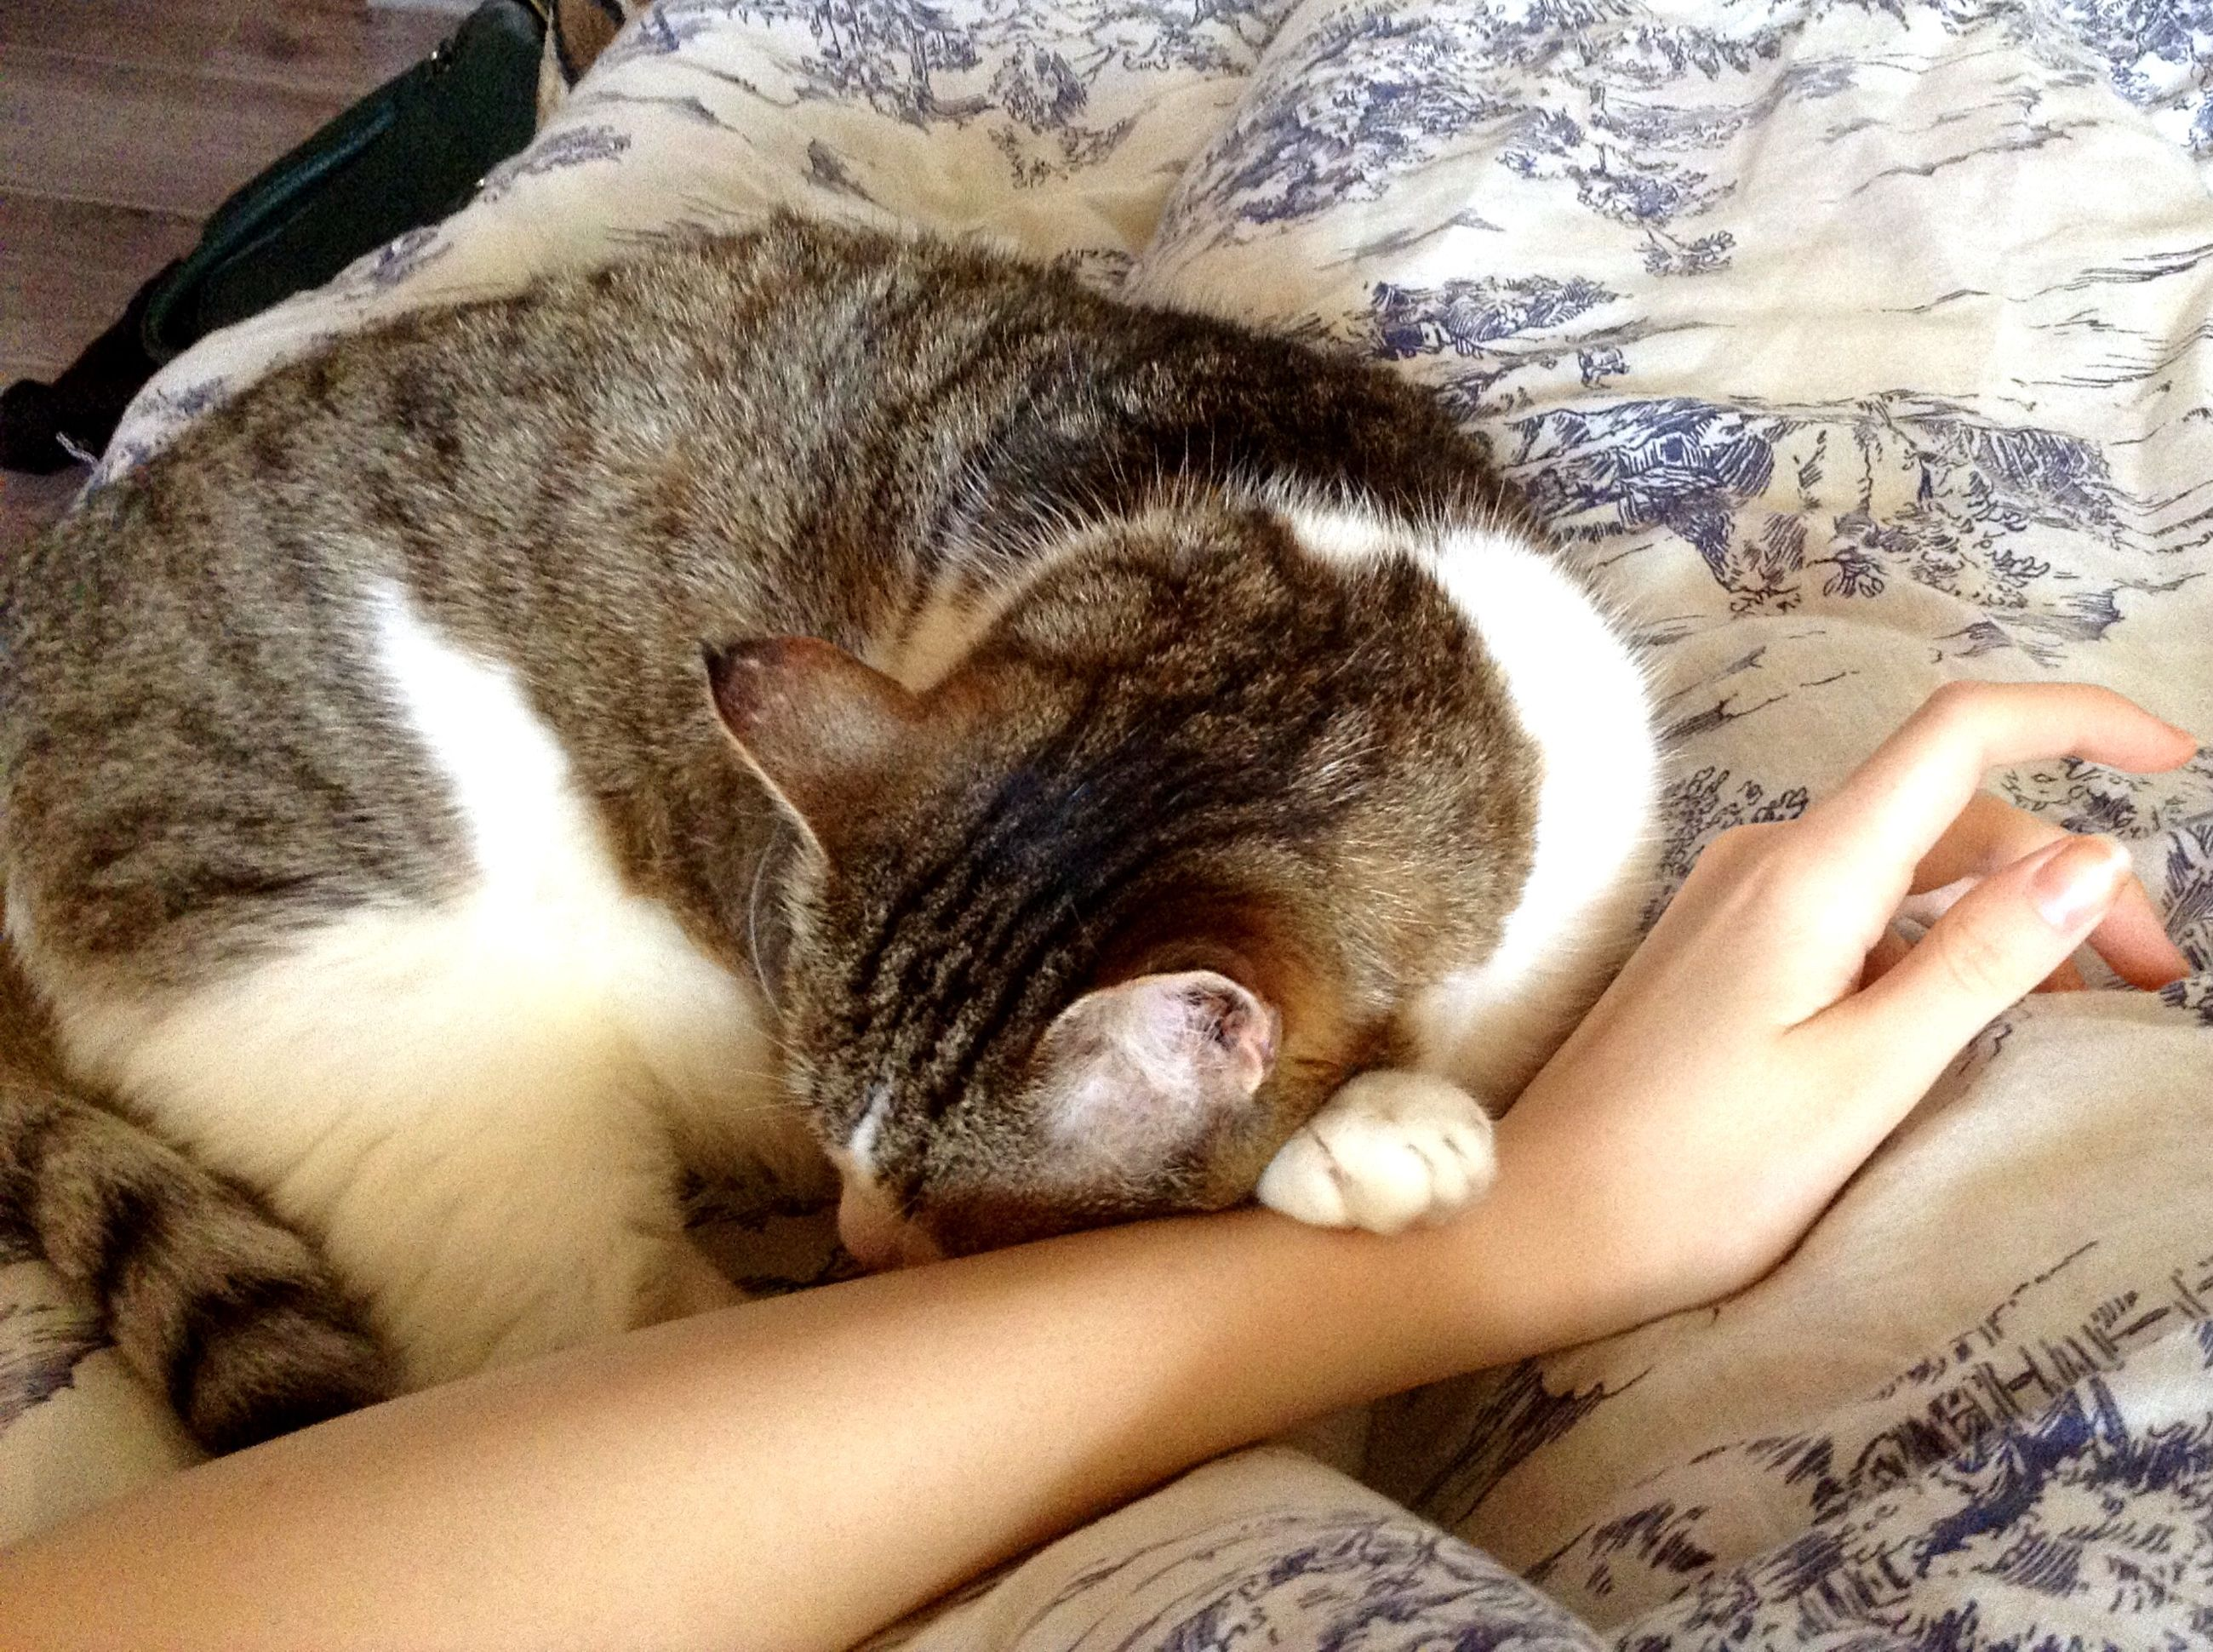 animal themes, one animal, pets, mammal, domestic animals, person, part of, relaxation, domestic cat, indoors, personal perspective, resting, lying down, cropped, sleeping, unrecognizable person, cat